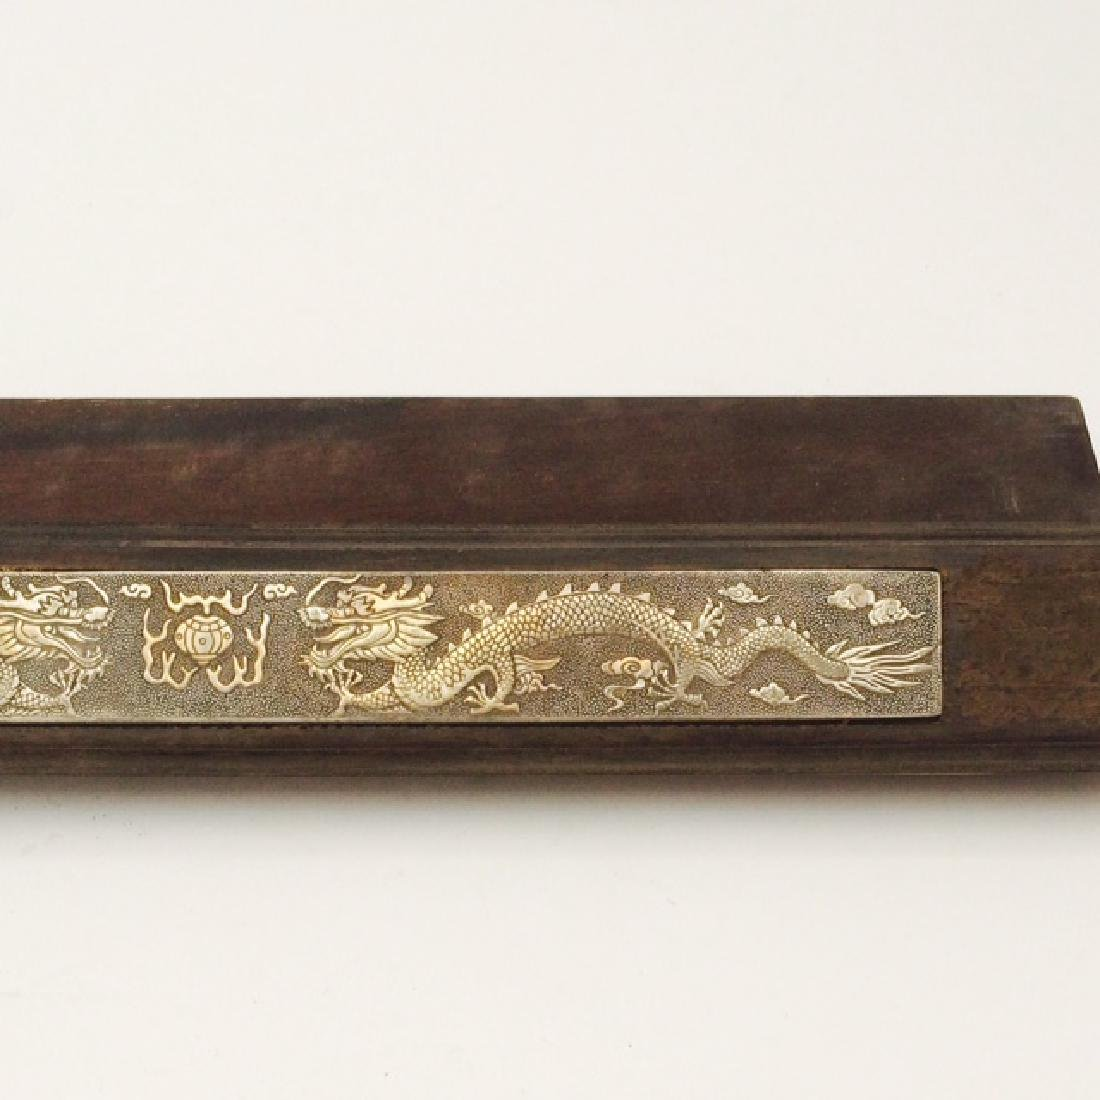 Chinese Qing Dynasty Style Paper Weights w Silver Inlay - 6